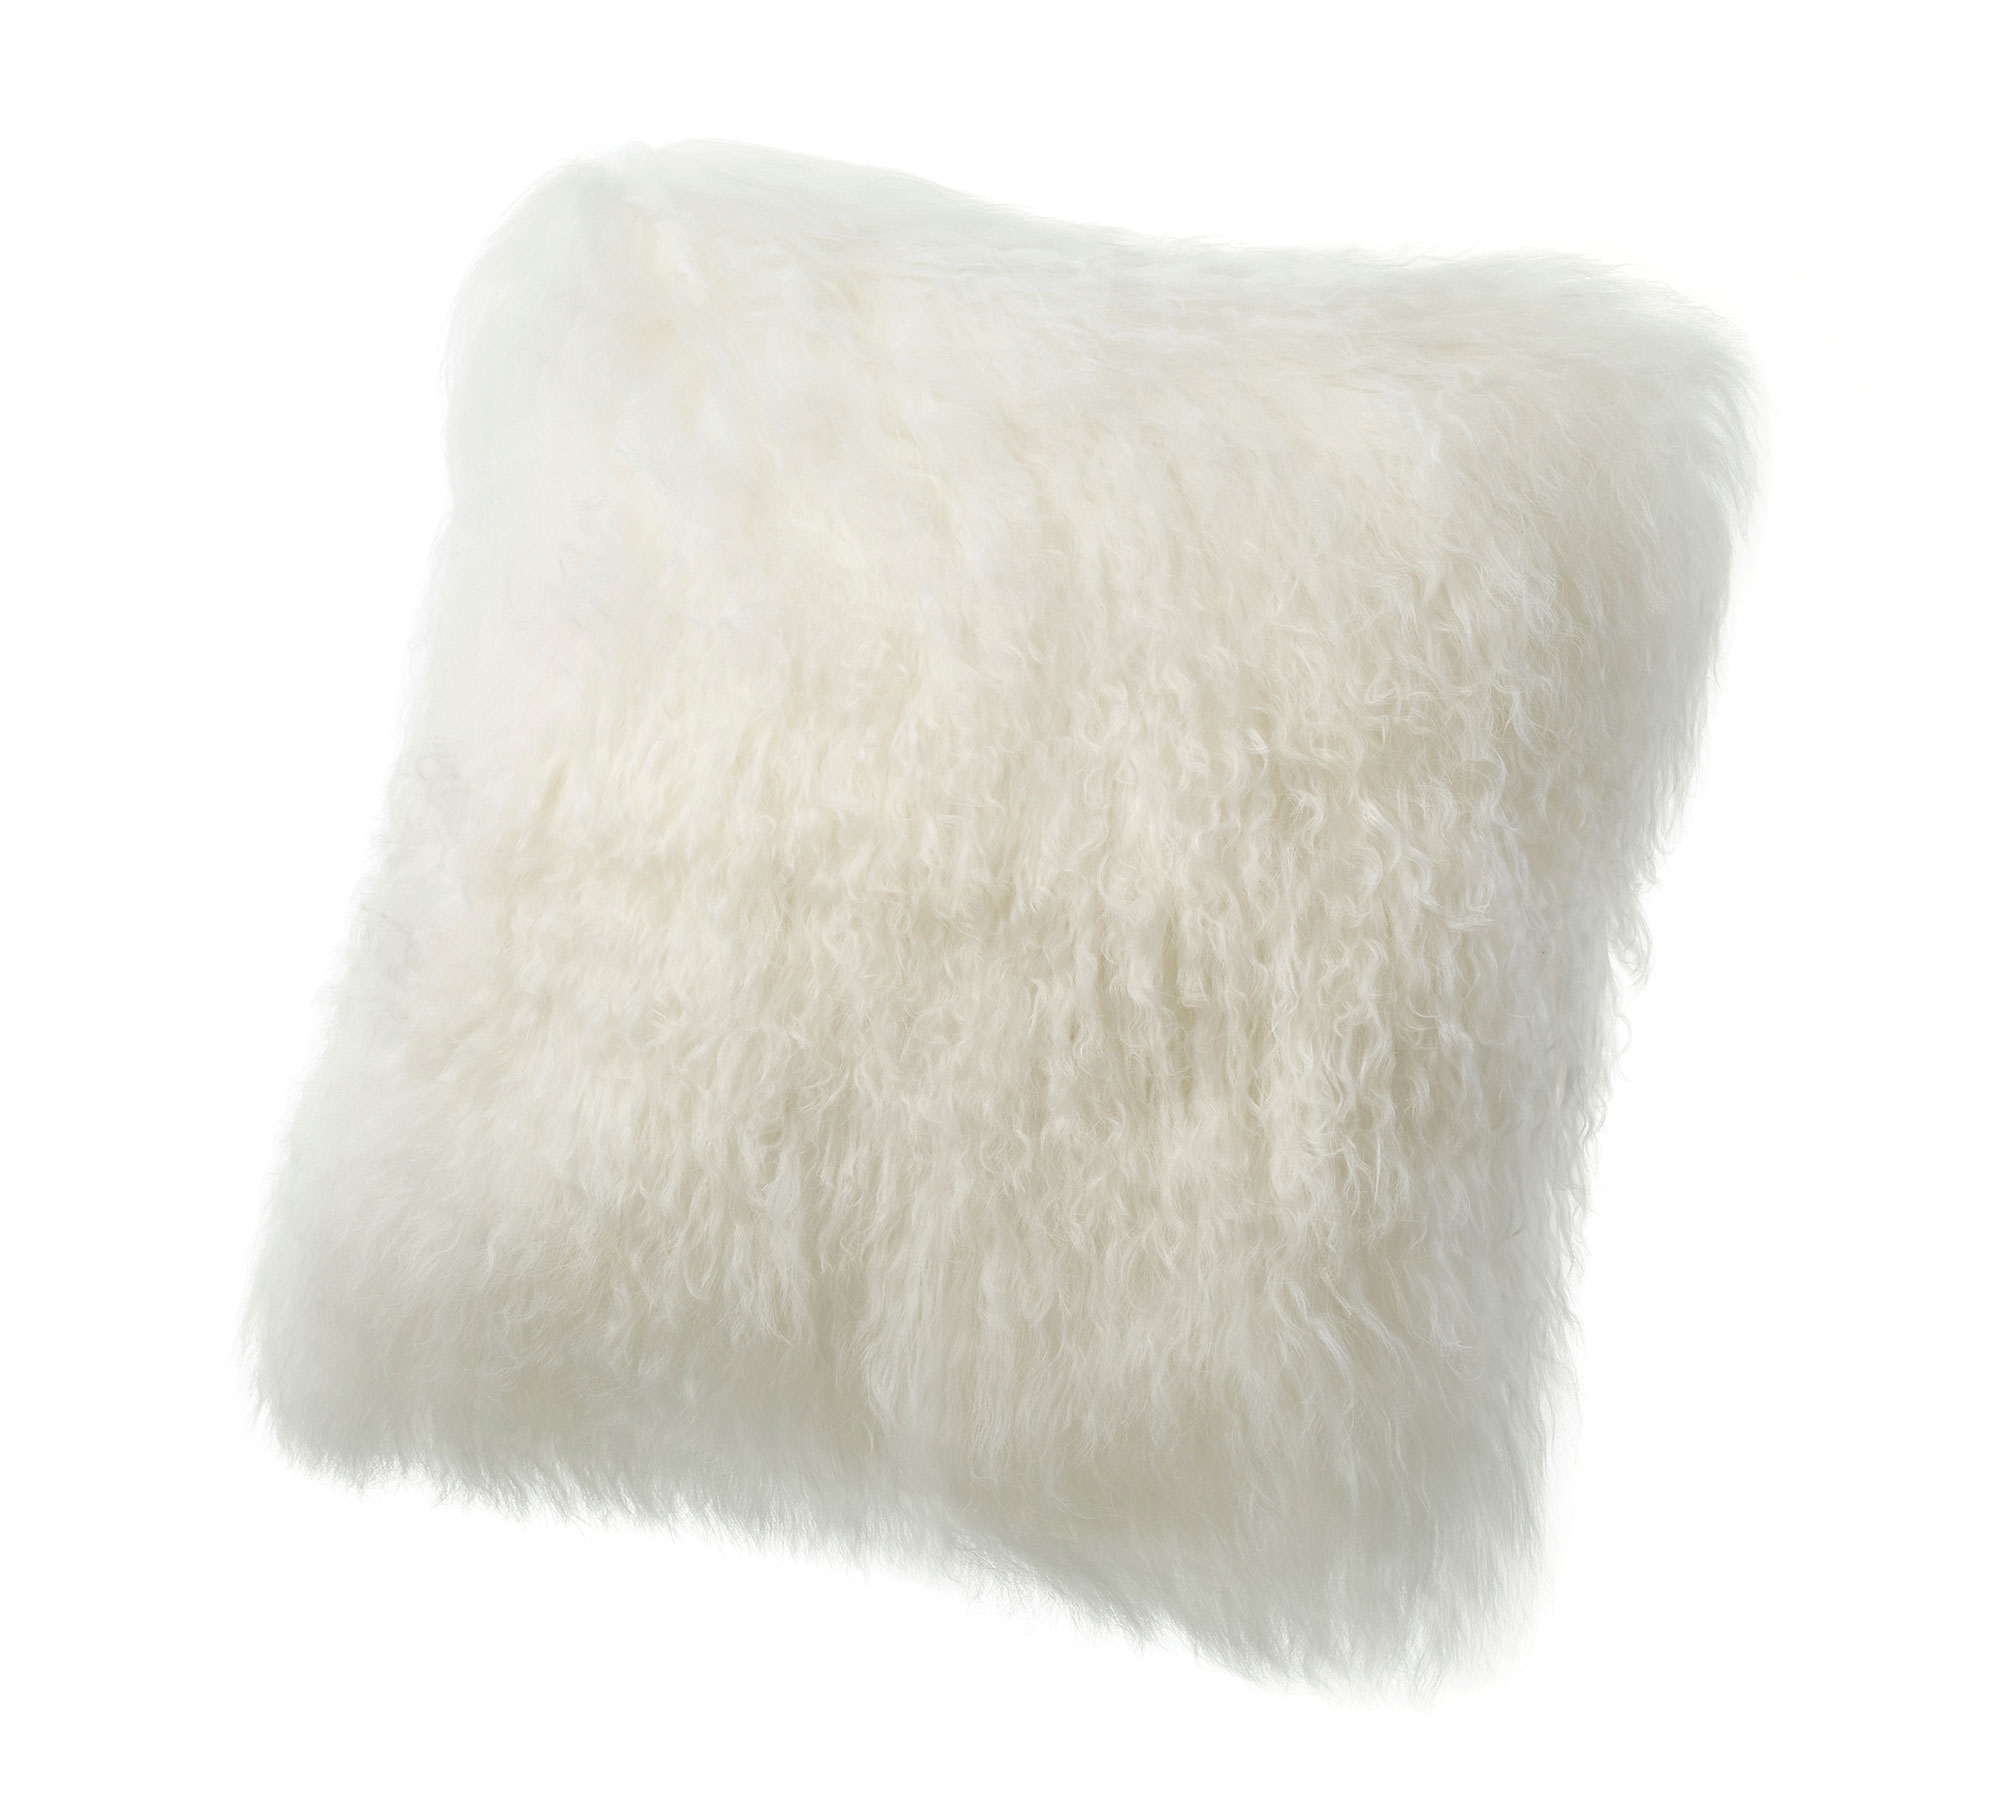 Tibetan Lambskin Curly Fur throw pillows ivory white